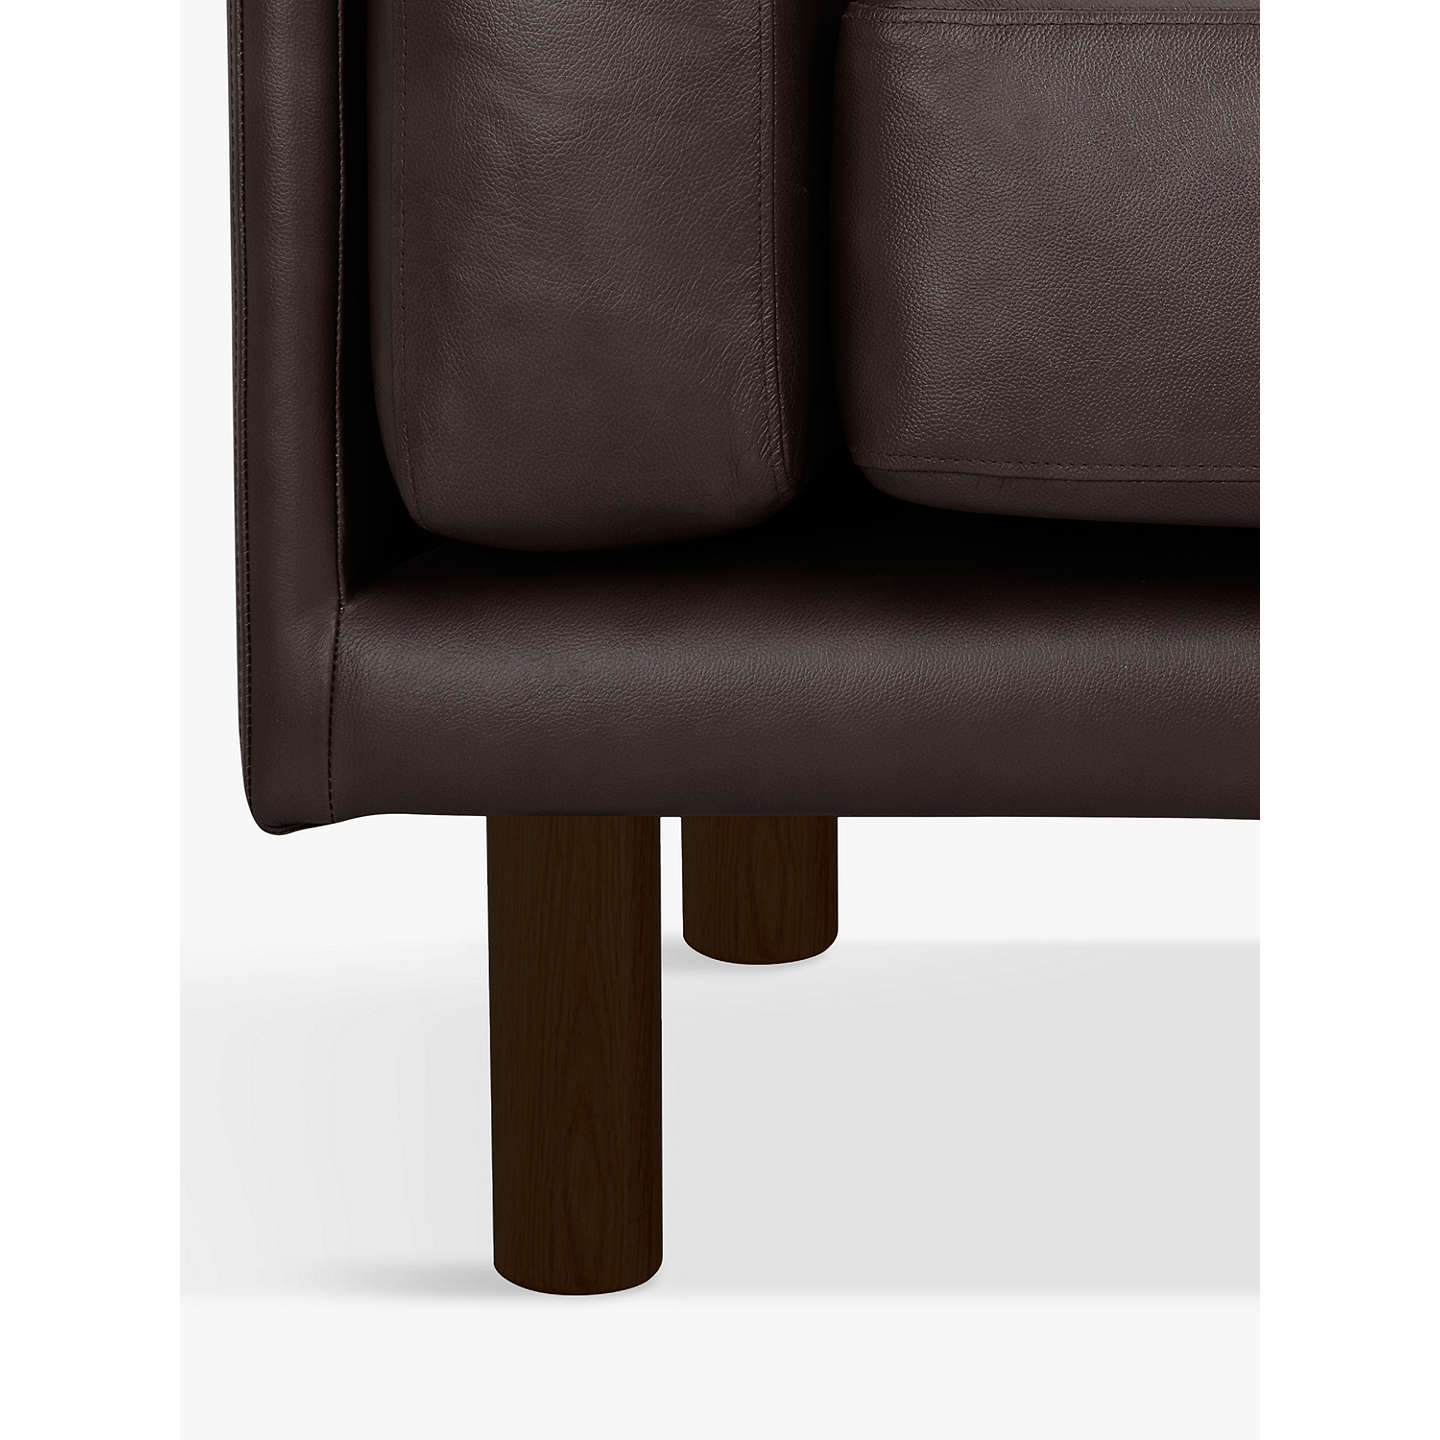 BuyDesign Project by John Lewis No.002 Grand 4 Seater Leather Sofa, Dark Leg, Demetra Charcoal Online at johnlewis.com